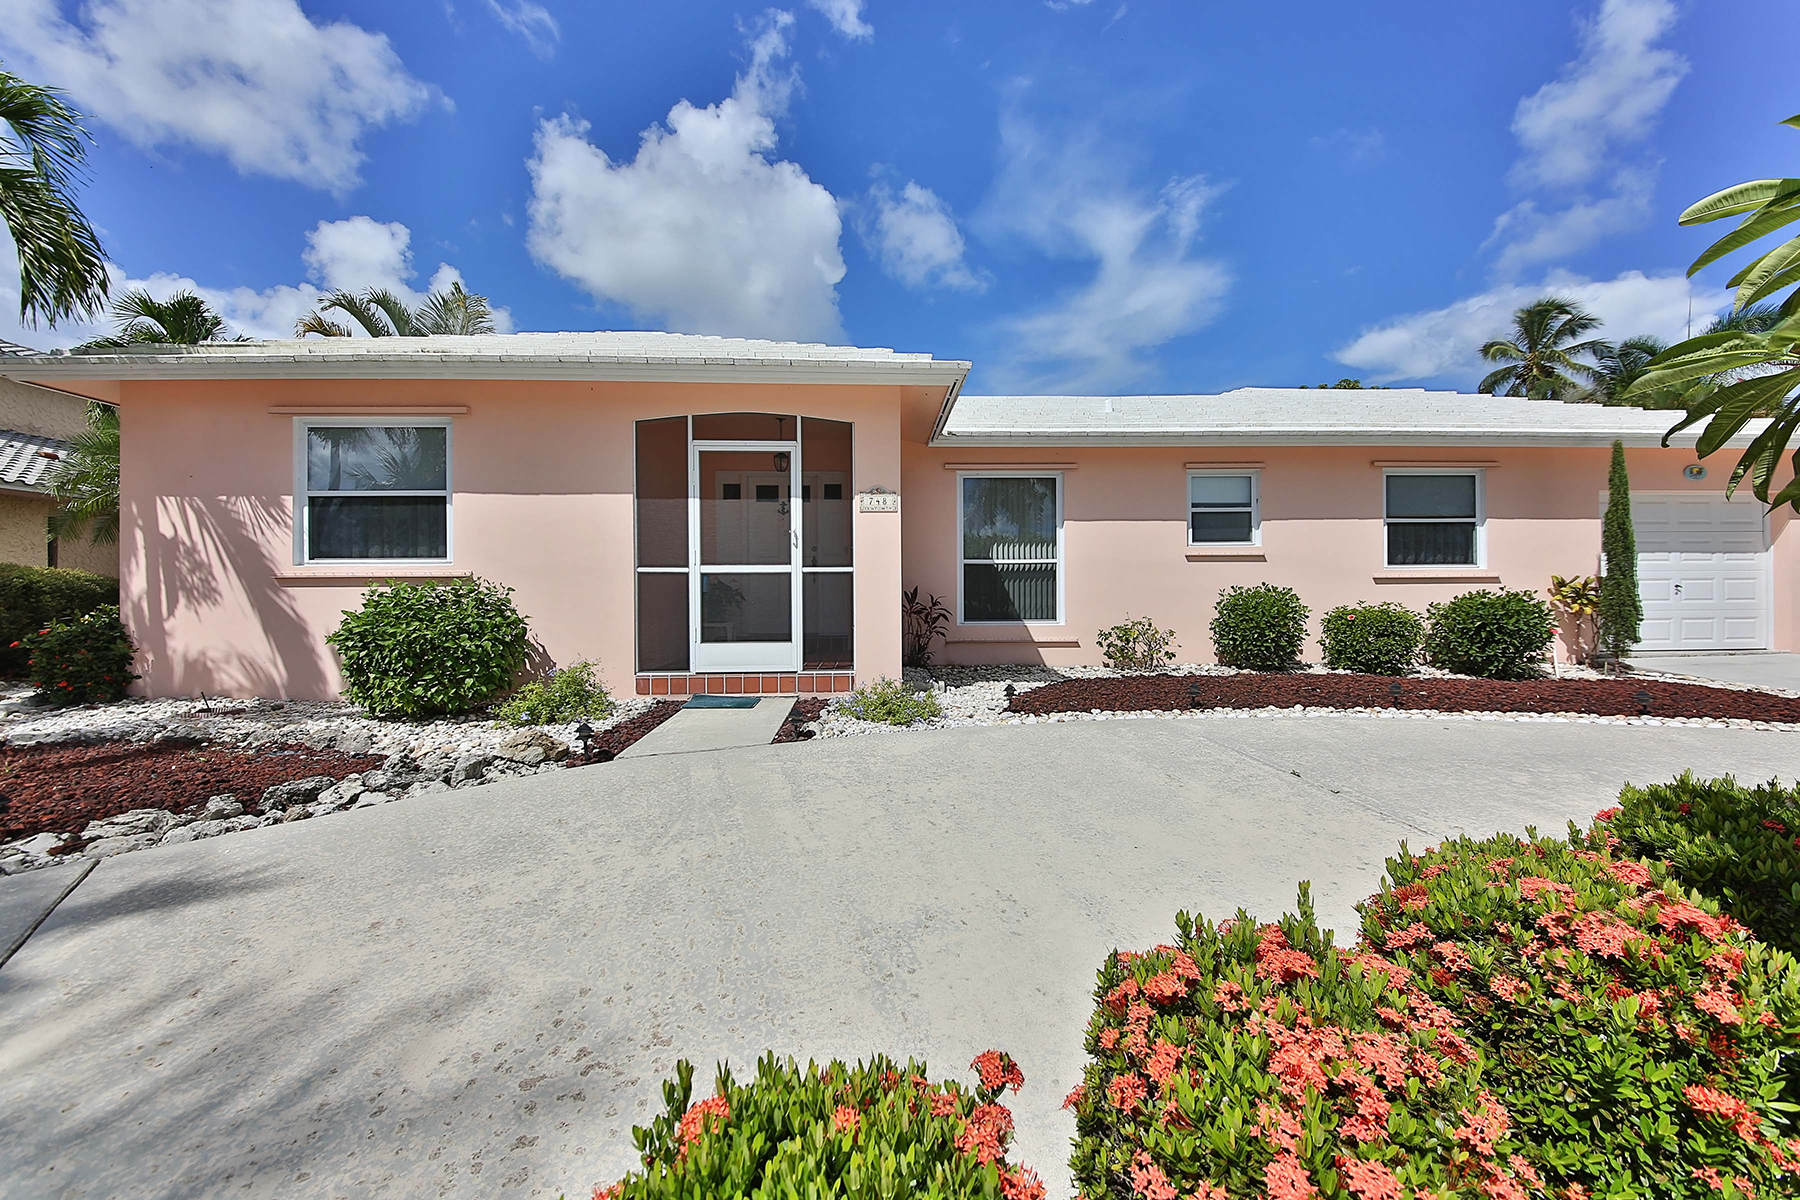 Single Family Home for Sale at MARCO ISLAND 748 N Barfield Dr, Marco Island, Florida 34145 United States